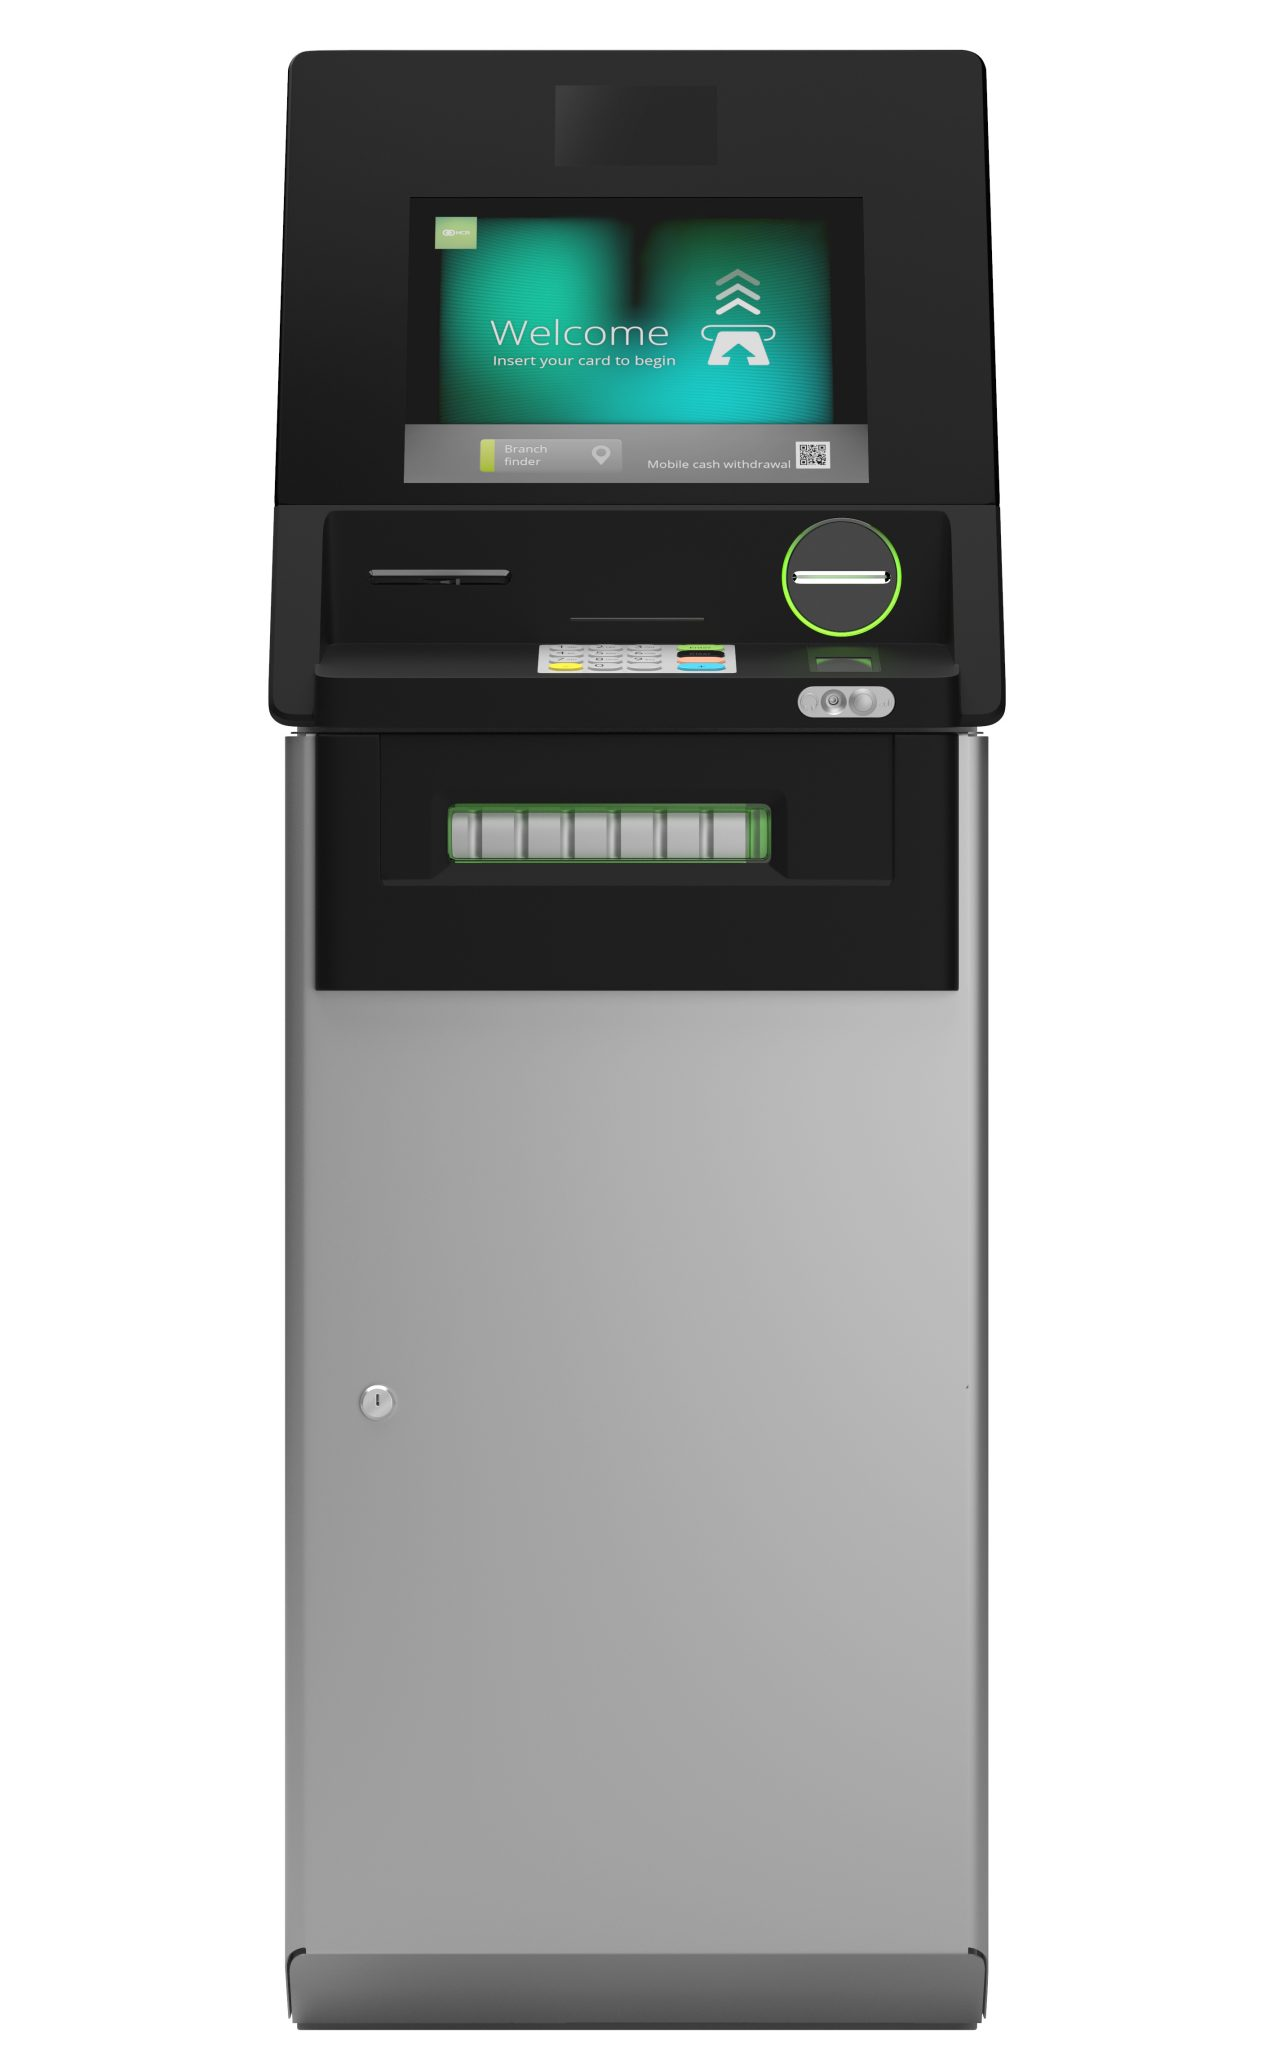 The SelfServ 23 is a new premium freestanding lobby ATM from NCR, featuring a modern aesthetic, enabling the latest touch and swipe capability.